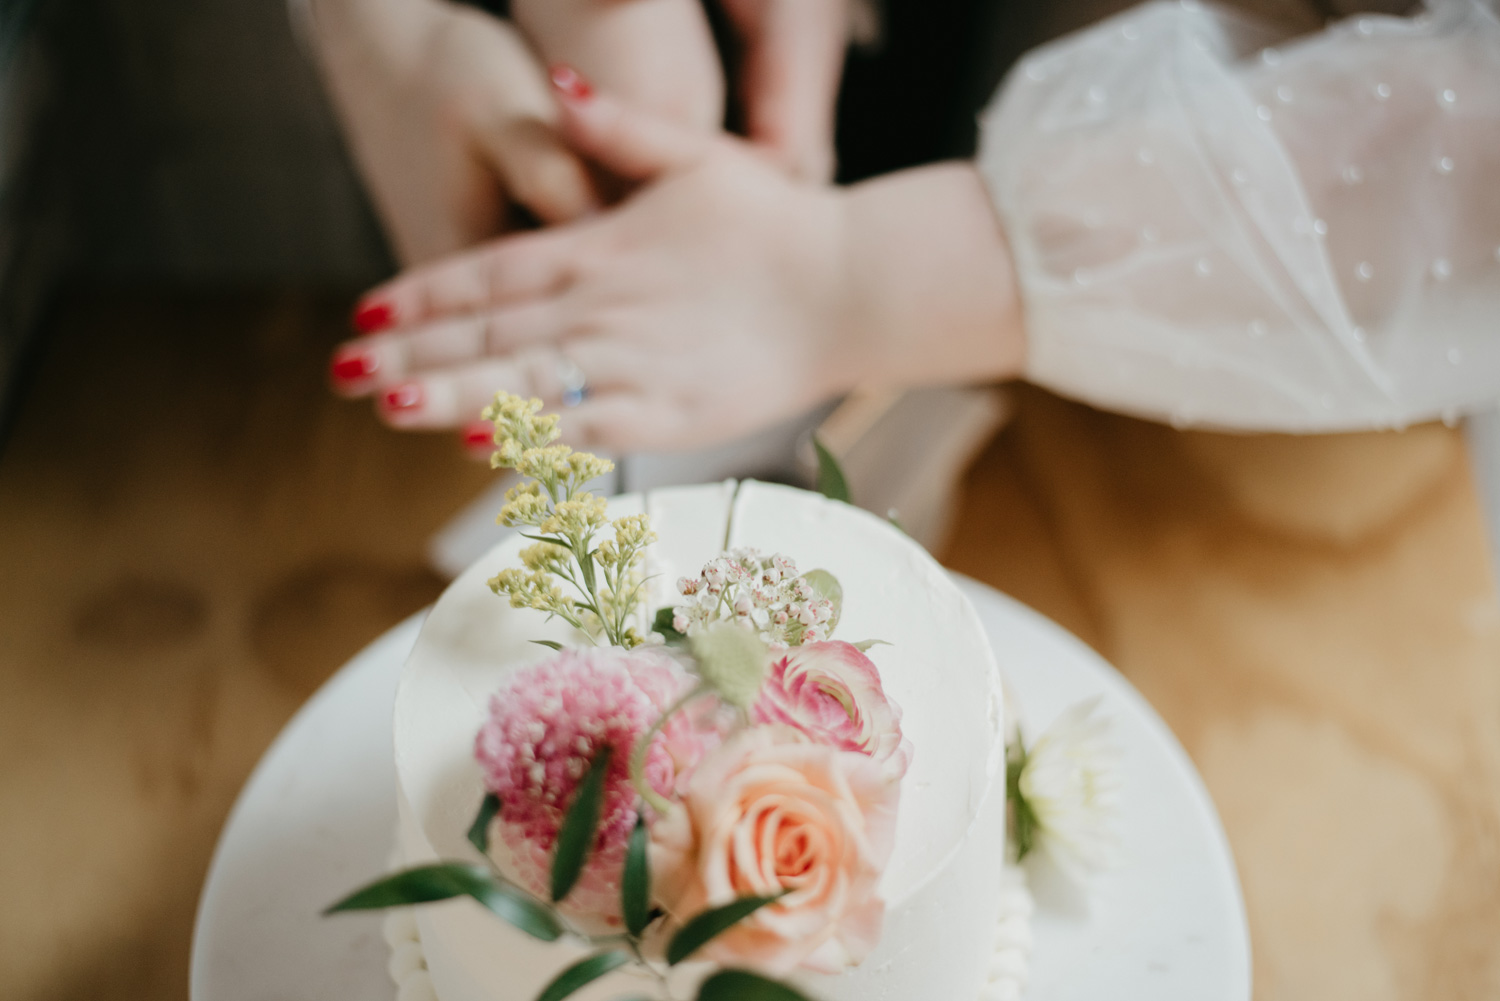 Close up photo of bride and groom's hands as they cut the cake